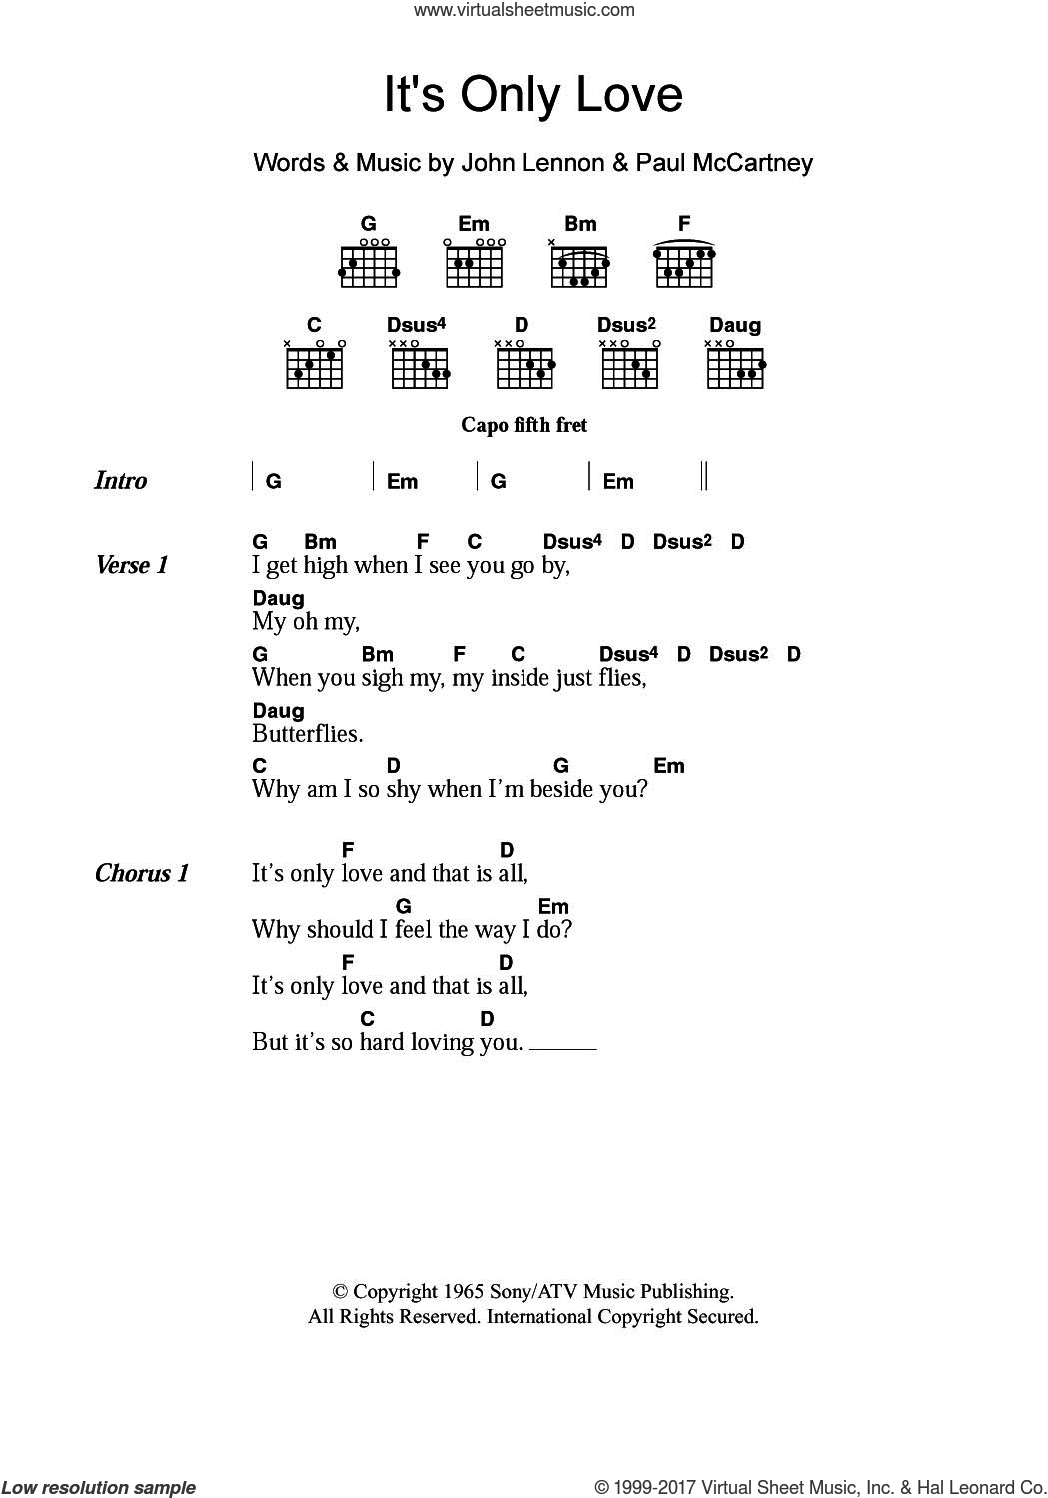 It's Only Love sheet music for guitar (chords) by The Beatles, John Lennon and Paul McCartney, intermediate skill level